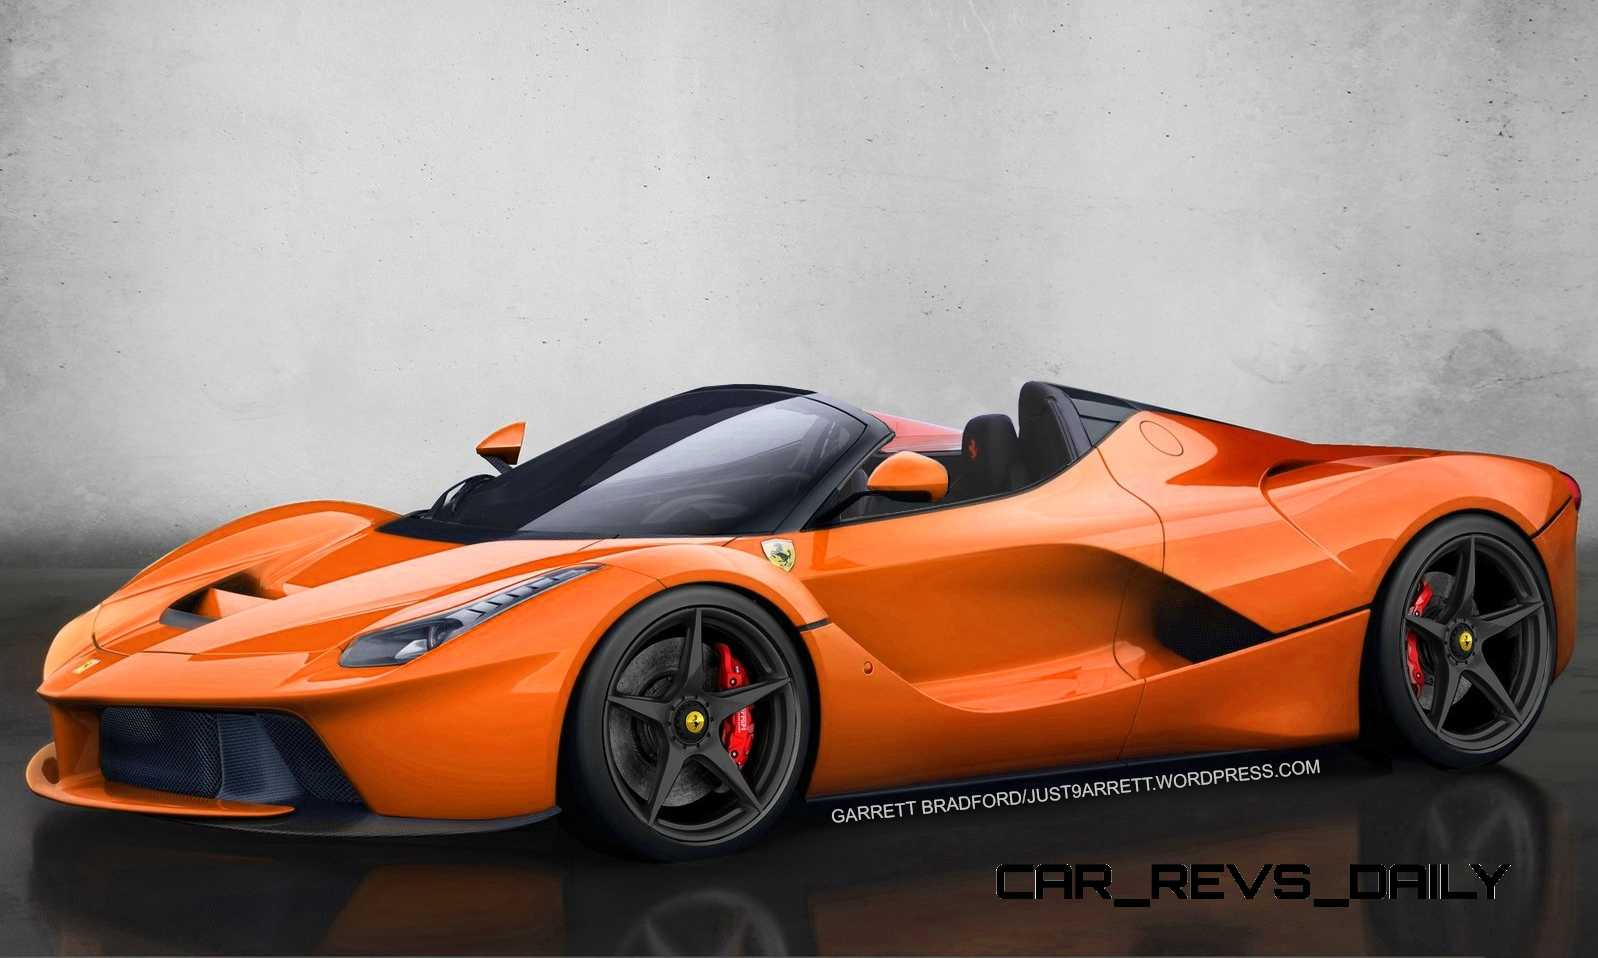 Laferrari Roadster Vs Mclaren P1 Spider